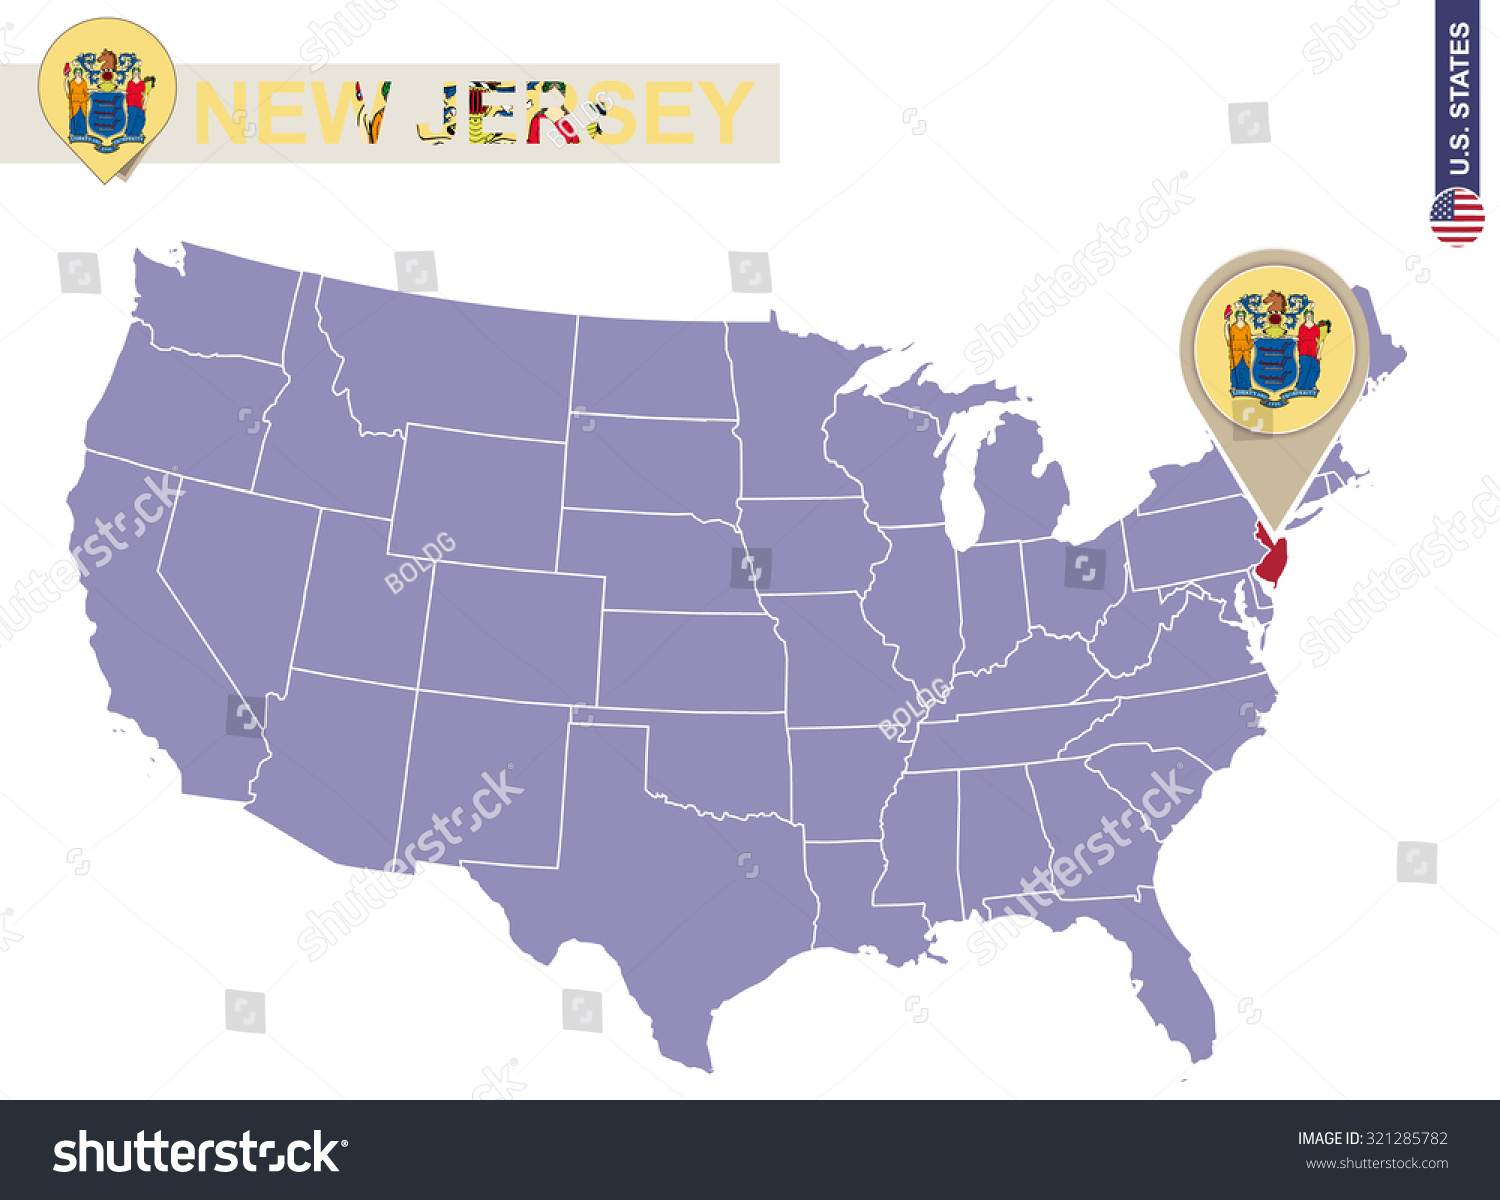 New Jersey State On Usa Map Stock Vector Shutterstock - New jersey on us map